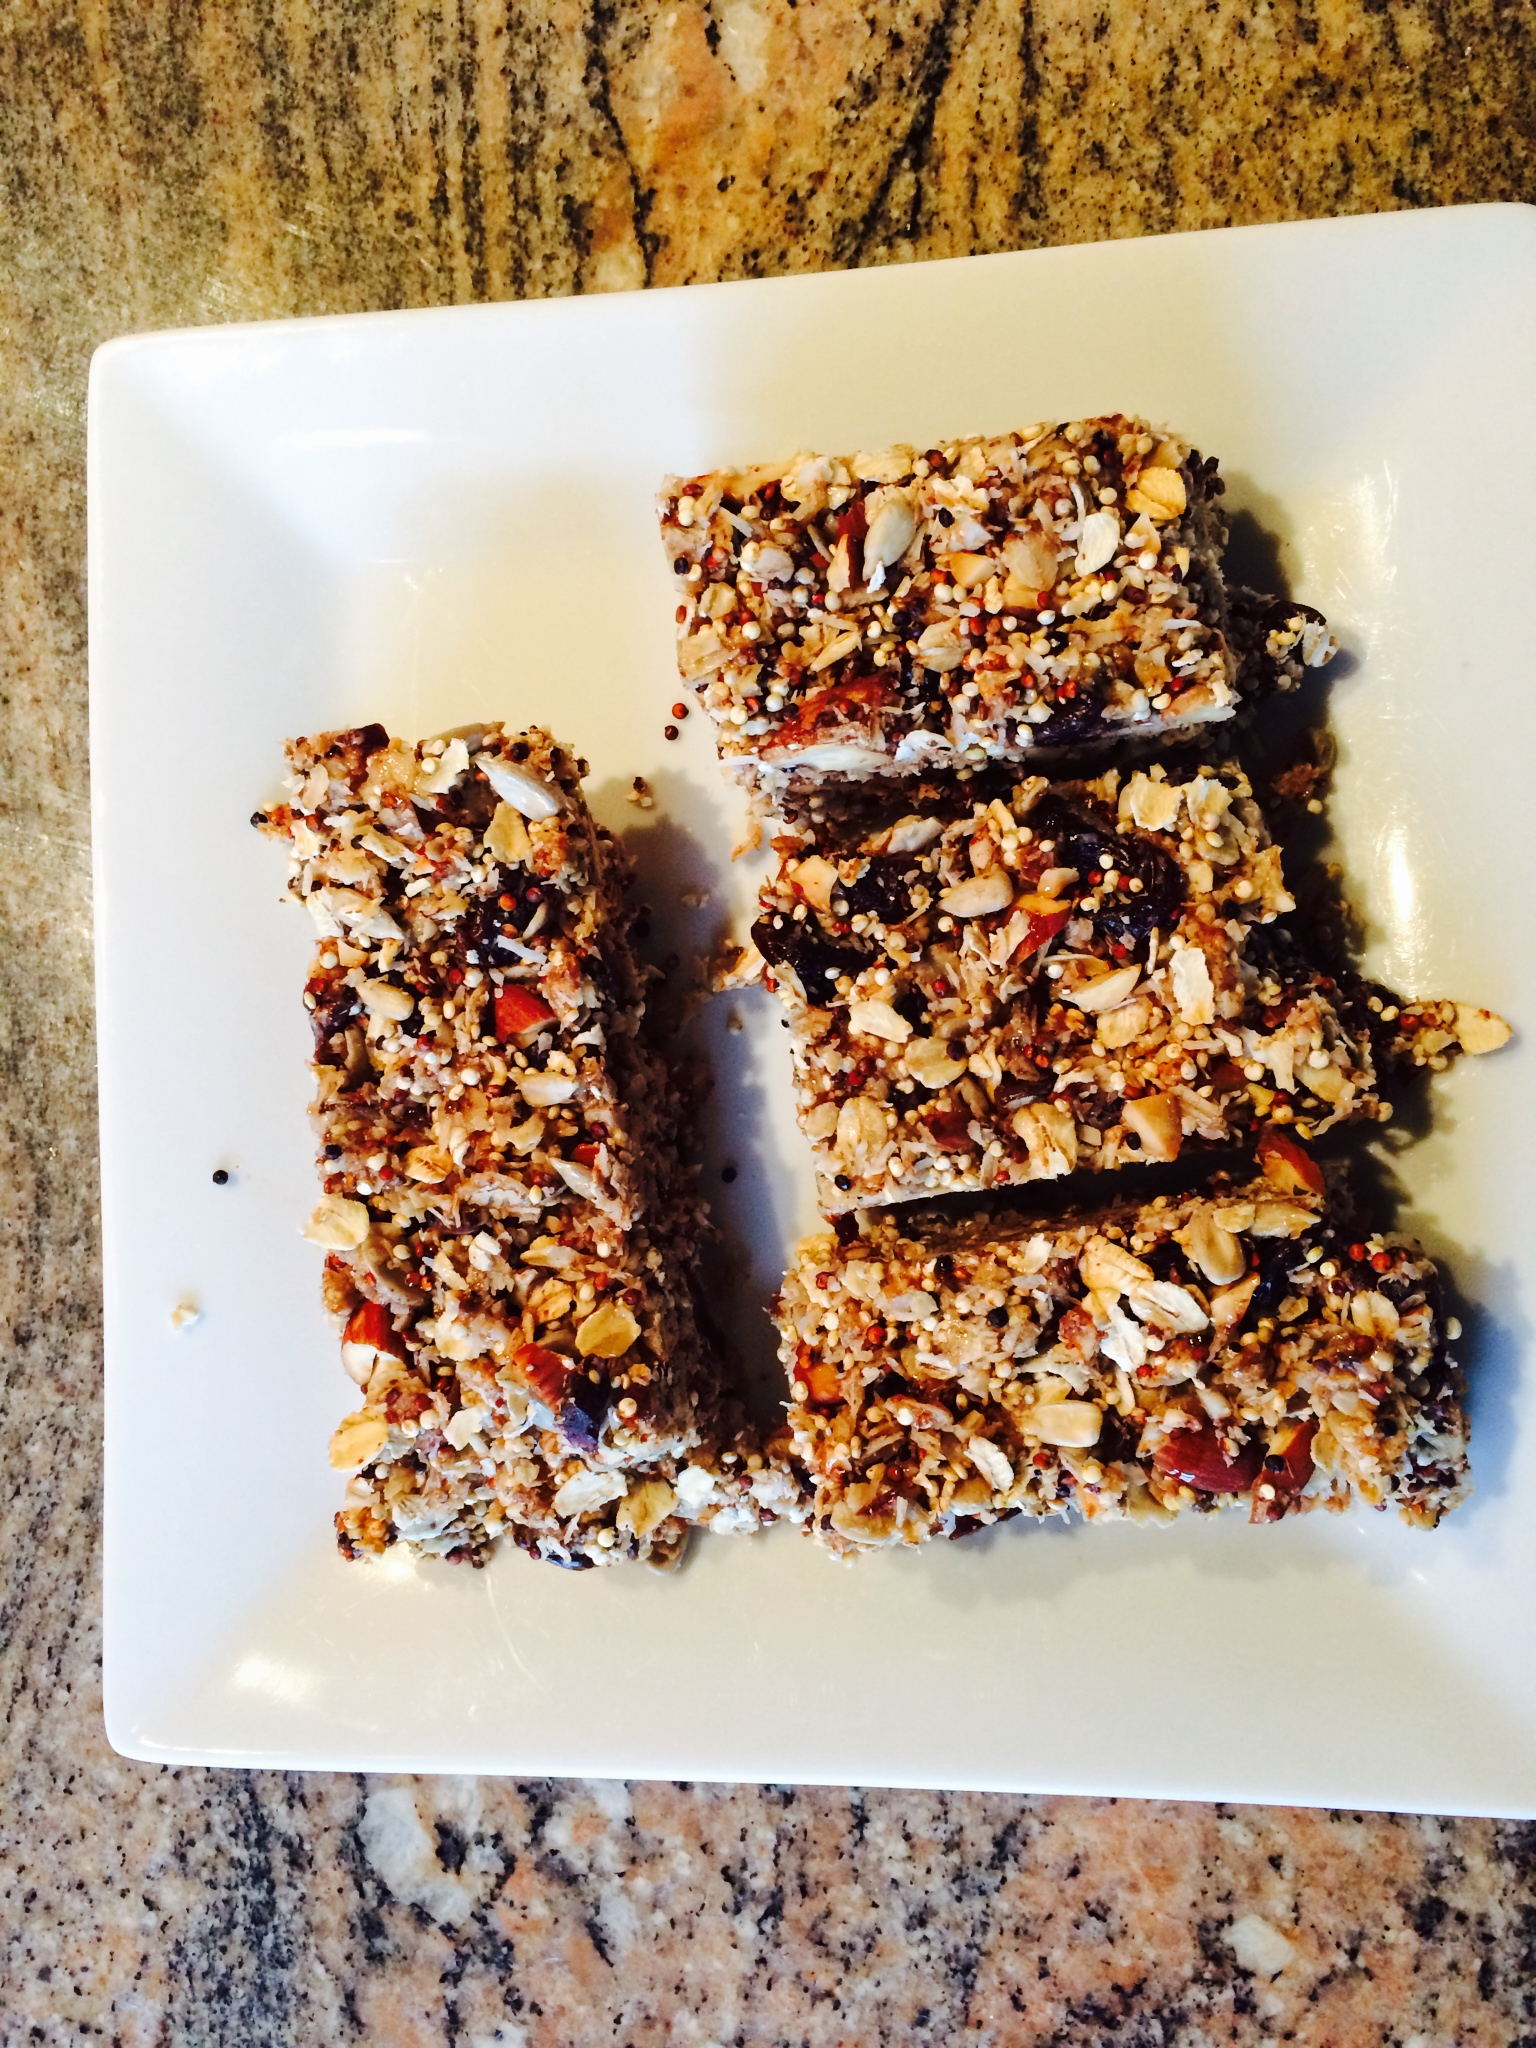 Energy bar recipe recipe ingredients asweatlife fabfitchicago final bars